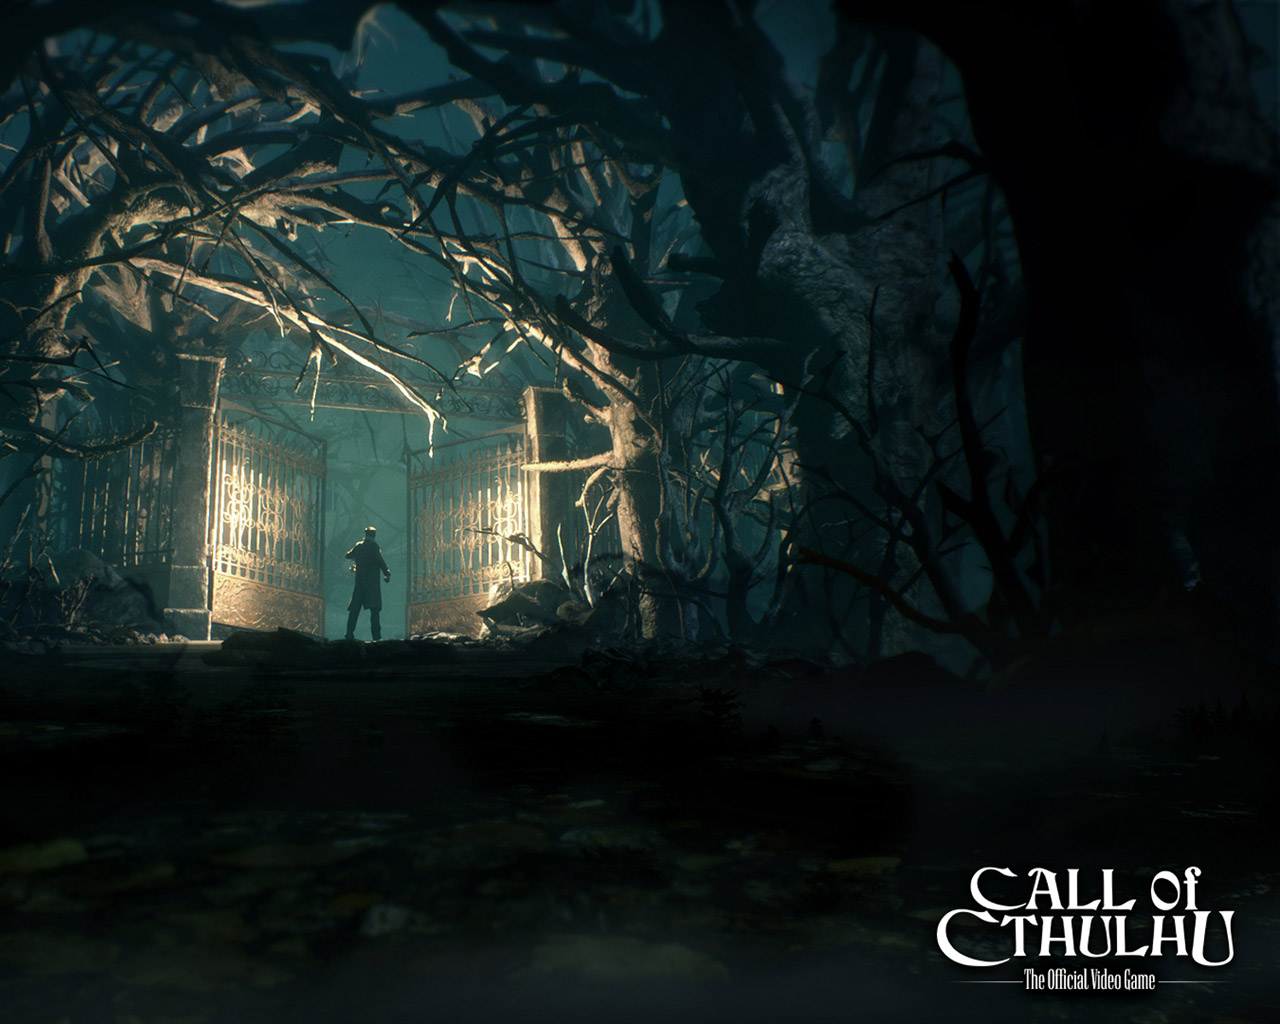 Free Call of Cthulhu Wallpaper in 1280x1024